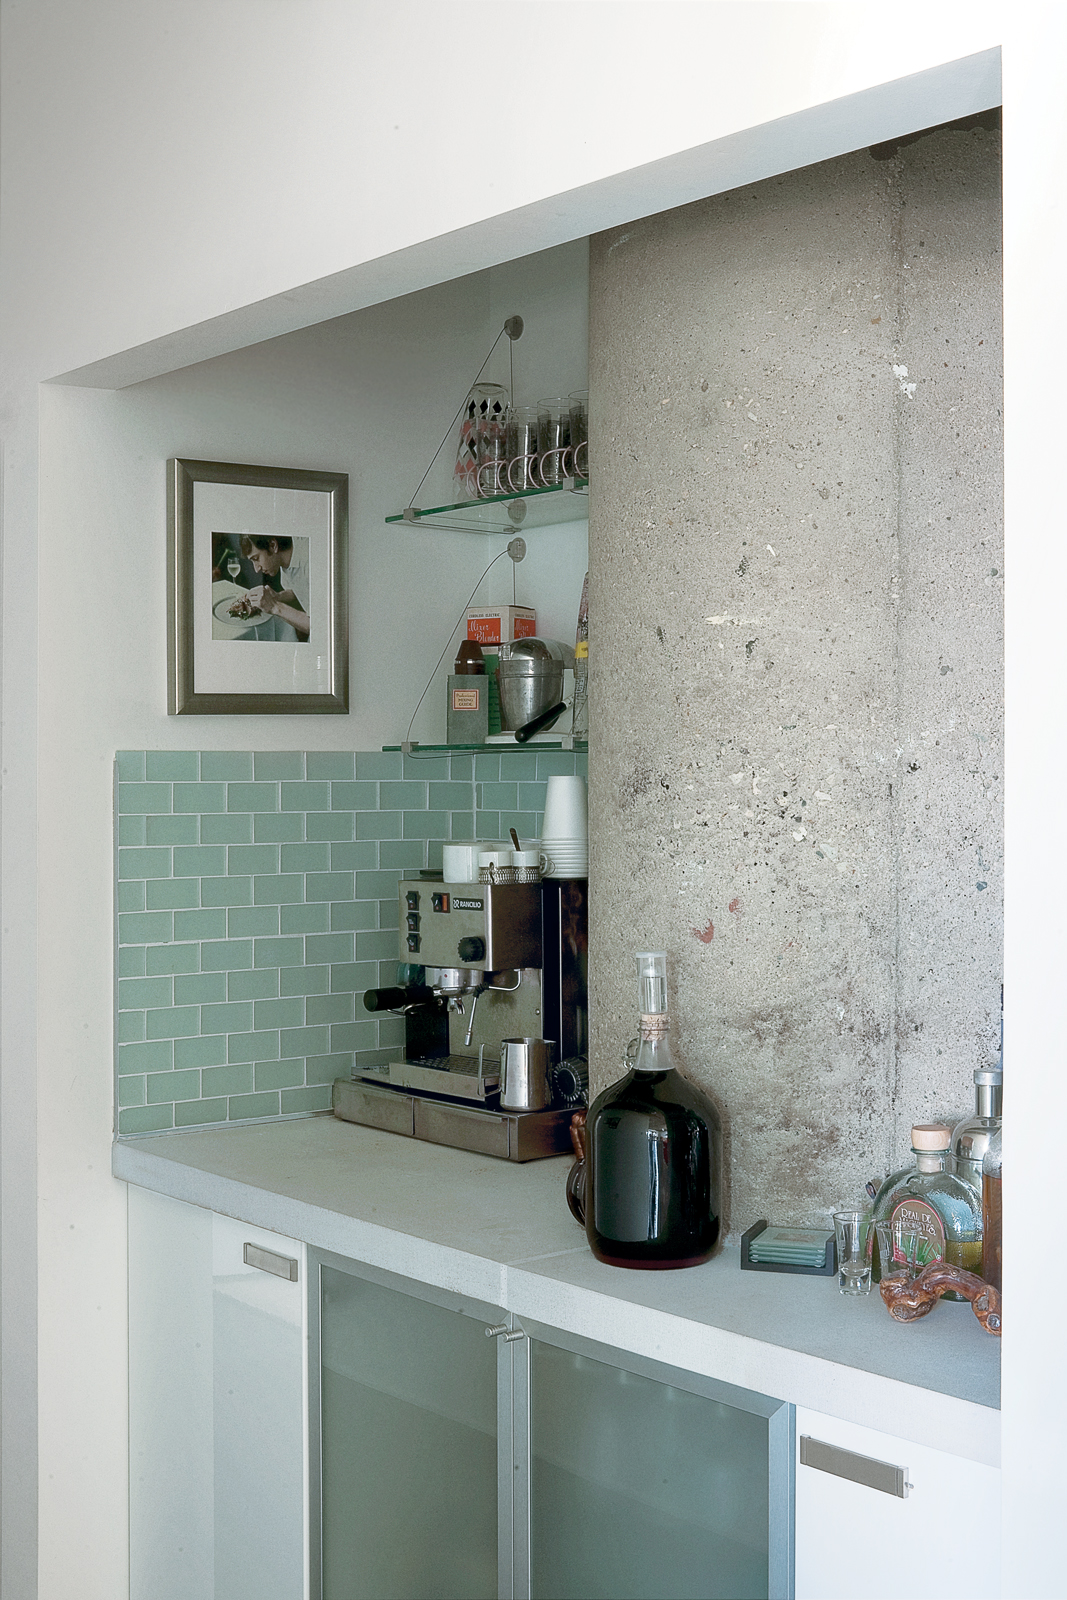 Arthur carved the Indiana limestone–clad bar out of an awkward space in the hallway.